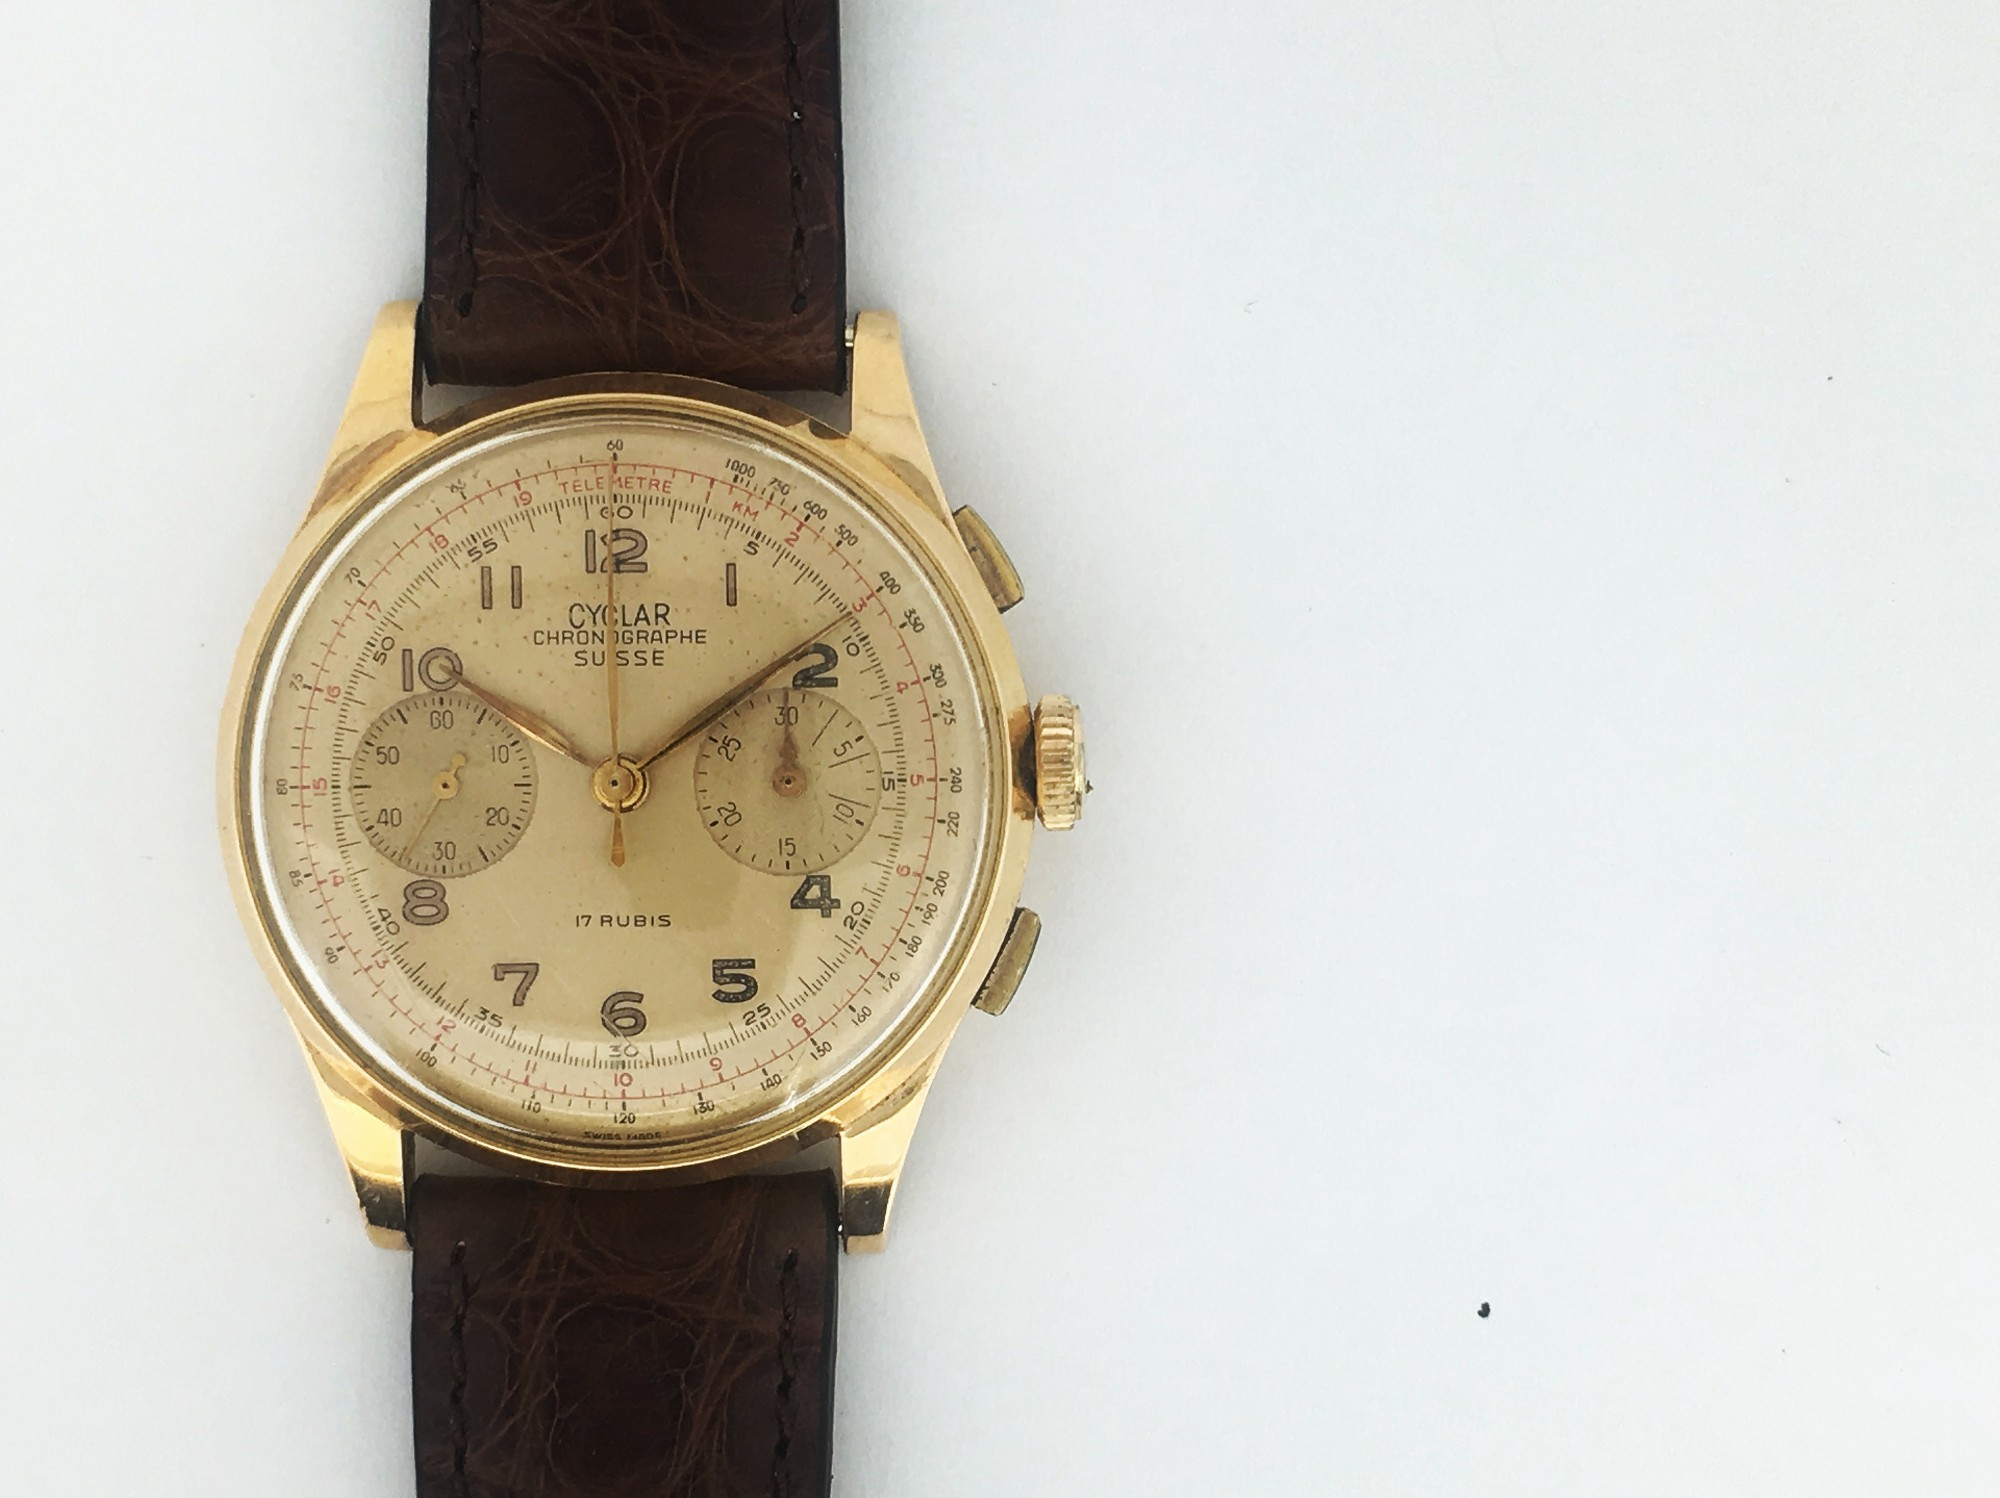 Montre occasion Eberhard & Co Chronographe Vintage Extra fort.